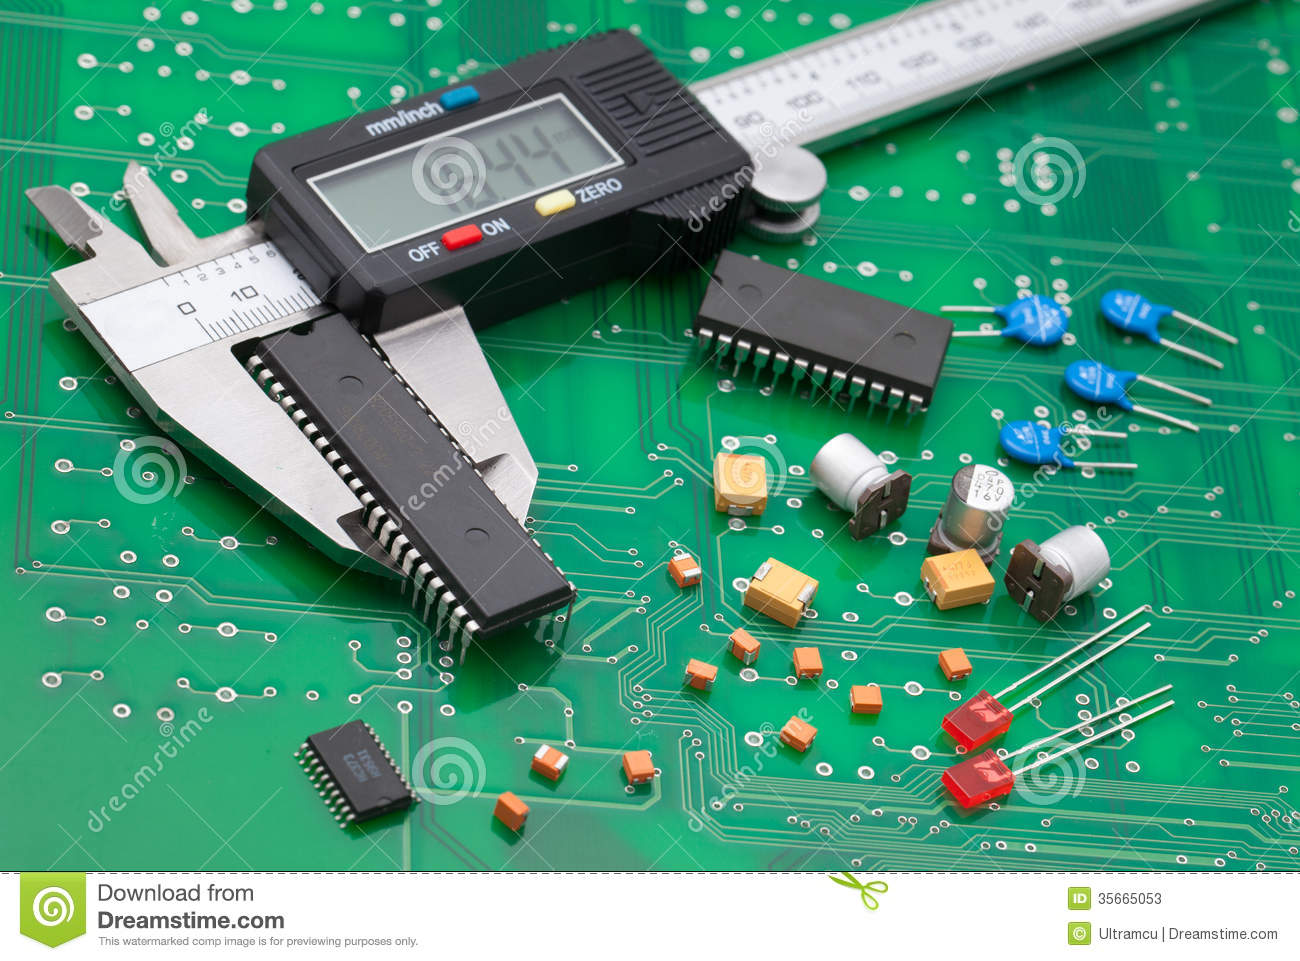 Electronic caliper measure IC and electronic part on green pcb